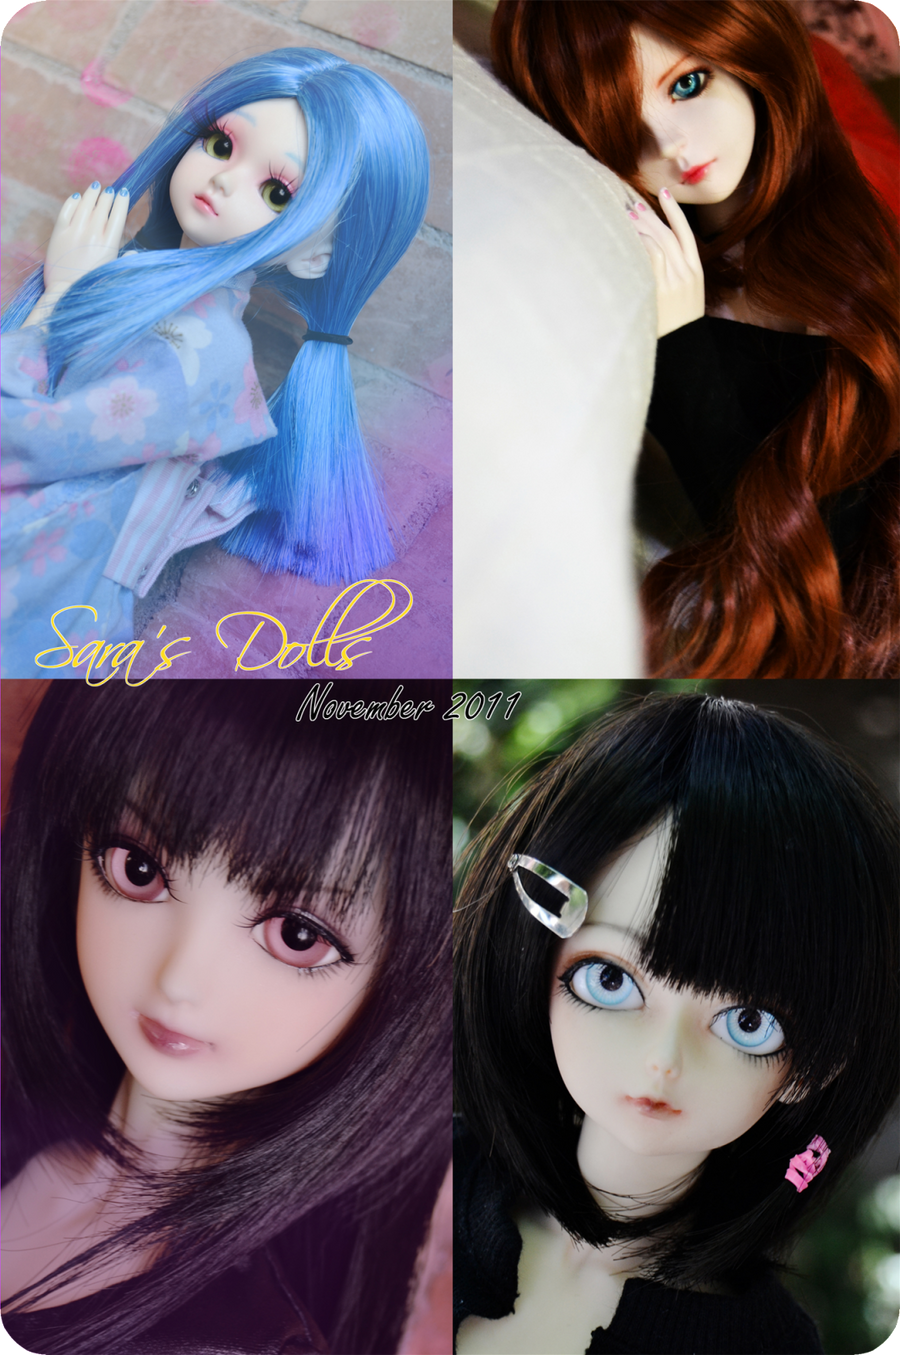 Sara-Dolls21's Profile Picture